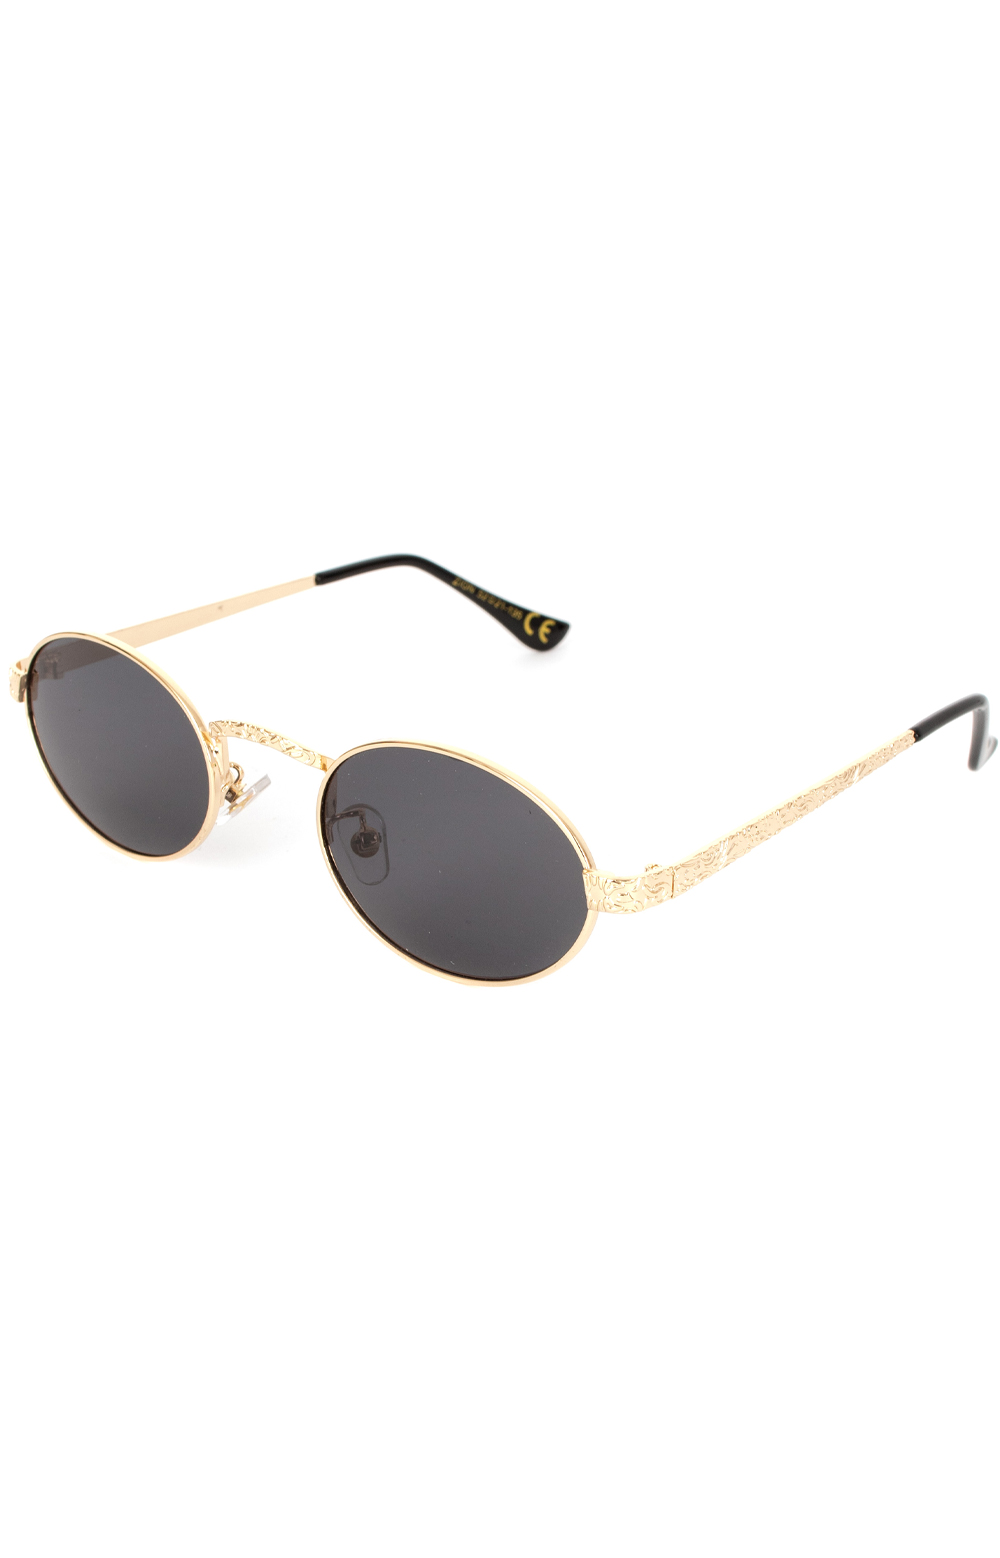 Zion Premium Sunglasses -  Gold Polarized